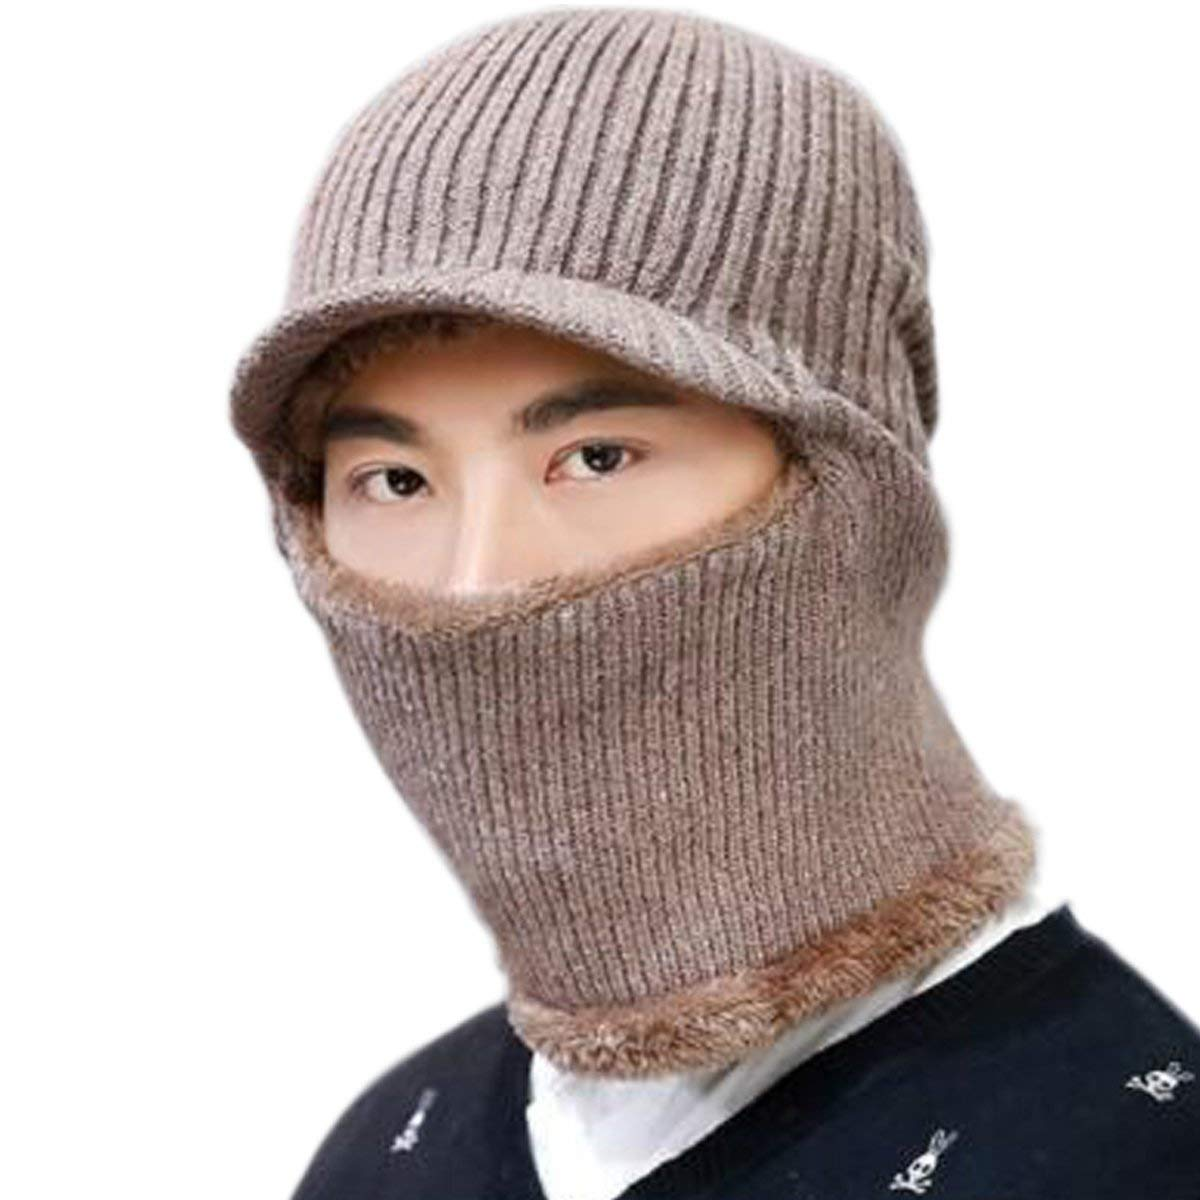 f9eb5ac1bddfc Get Quotations · JOYEBUY Warm Knitted Balaclava Beanie Hat Windproof Ski  Face Mask Winter Hats